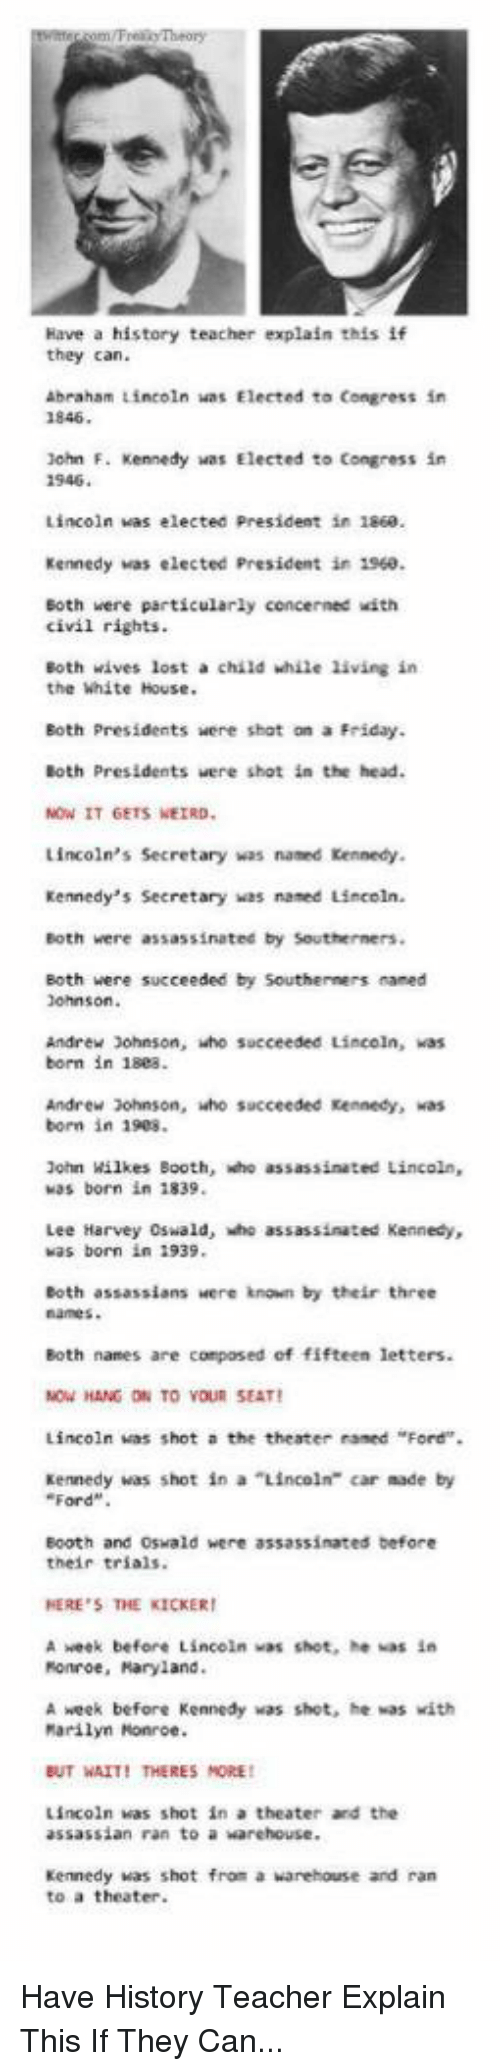 """Lee Harvey Oswald: Have a history teacher explain this if  they can.  Abraham Lincoln was Elected to Congress in  lohn F. Kennedy  was Elected to Congress in  1946  Lincoln was elected President in 1860.  Kennedy was elected President in 1960.  Both were particularly cencerned with  civil rights.  Both wives lost a child while living in  the White House.  Eoth Presidents were shot on a Friday.  Both Presidents were shot in the head.  NOW IT GETS WEIRD  Lincoln's Secretary was named Kennedy.  Kennedy's Secretary was named Lincoln.  Both were assassinated by Southerners.  Both were succeeded by Southerners maned  Johnson.  Andrew Johnson, who succeeded Lincoln, was  born in 18e8  Andrew Johnson, who succeeded Kennedy, kas  born in 1908.  John Wilkes Booth, who assassinated Lincoln,  was born in 1839  Lee Harvey Oswald, who assassinated Kennedy,  was born in 1939  Both assassians Here known by their three  Both names are composed of fifteen letters.  HANG ON TO VOU SEAT  Lincoln was shot a the theater raned """"Ford"""".  Kennedy was shot in a """"Lincoln"""" car made by  Ford  Booth and Oswald were assassinated before  their trials.  HERE'S THE KICKER  A week before Lincoln was shot, he was in  Ronroe, Haryland.  A week before Kennedy was shot, he was with  Marilyn Monroe.  BUT WAIT! THERES MORE  Lincoln was shot in a theater ard the  assassian ran to a warehouse.  Kennedy was shot from a  warehouse and ran  to a theater Have History Teacher Explain This If They Can..."""